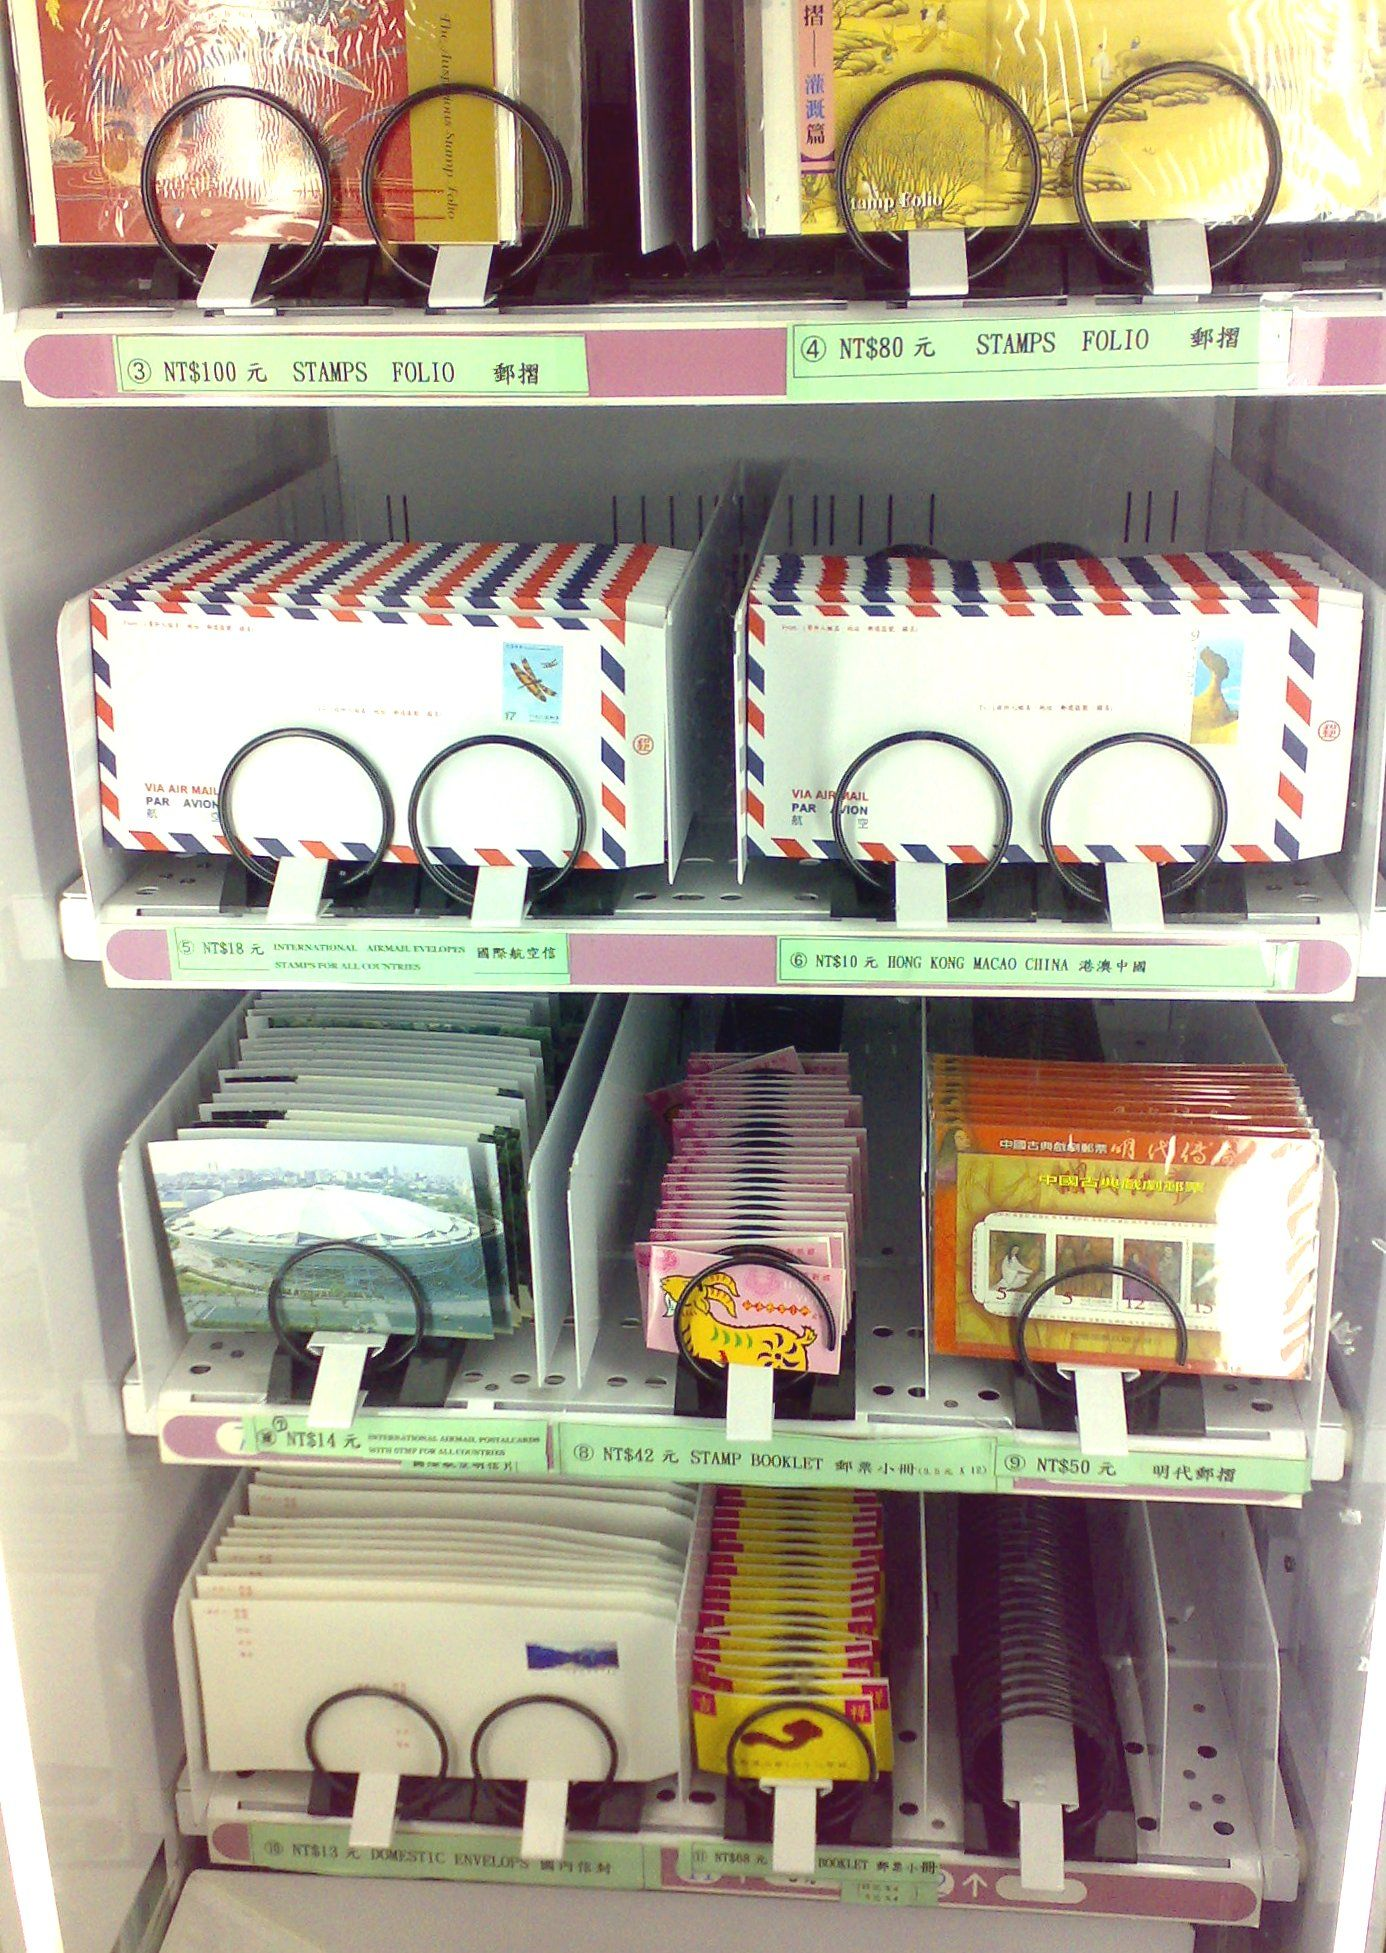 So Cool A Vending Machine That Sells Stationery Post Cards Etc